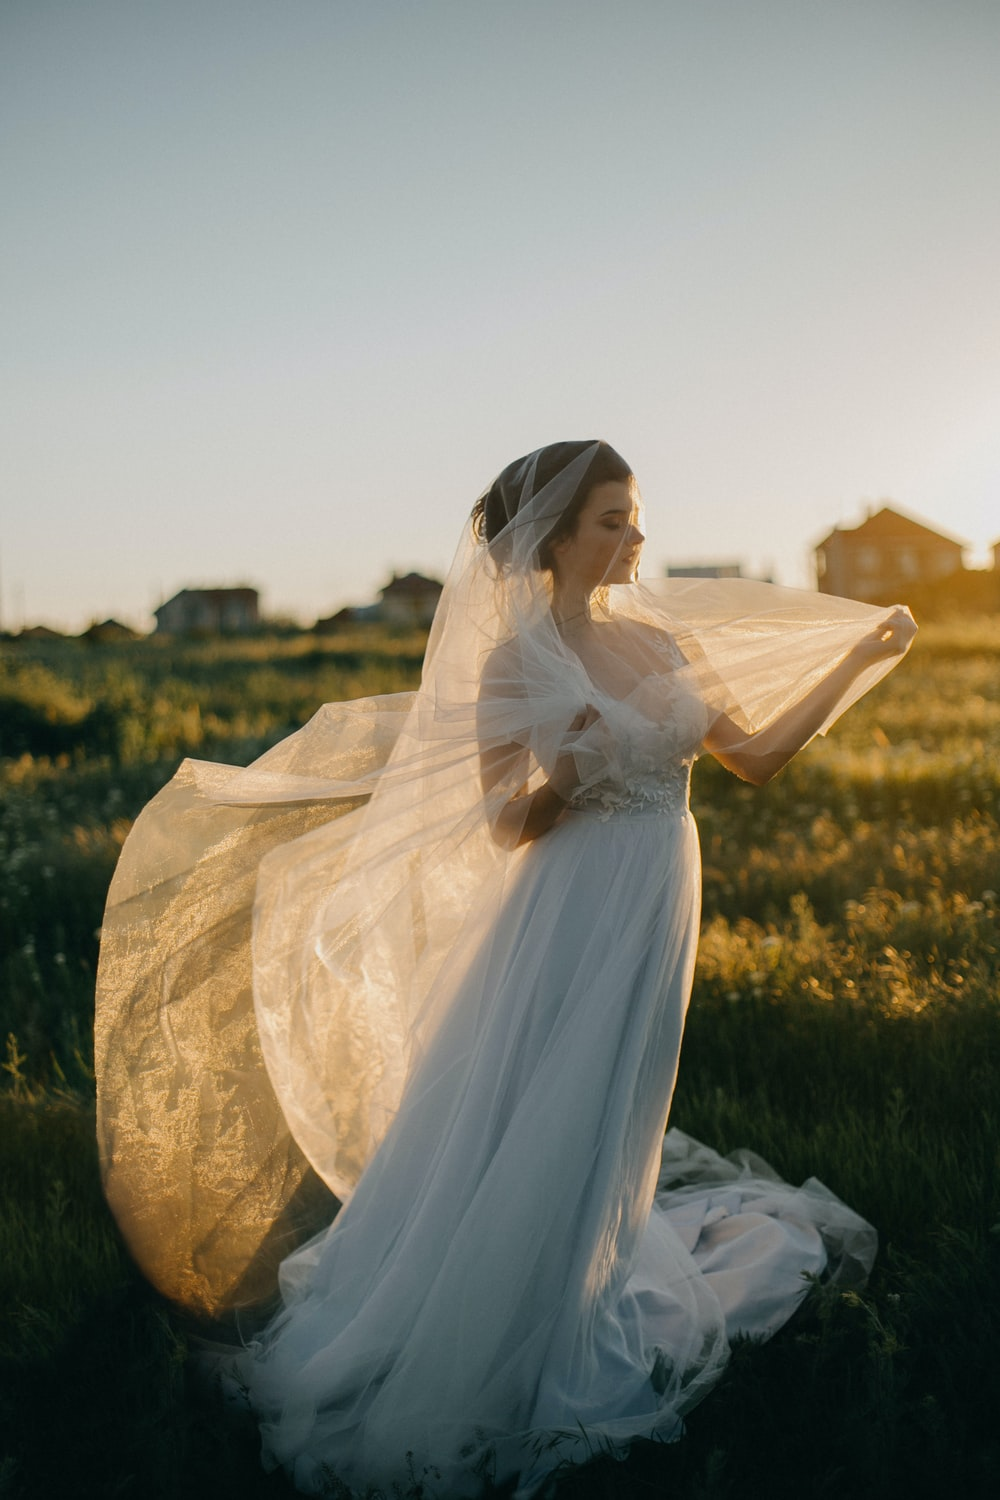 woman wearing wedding gown in green grass field